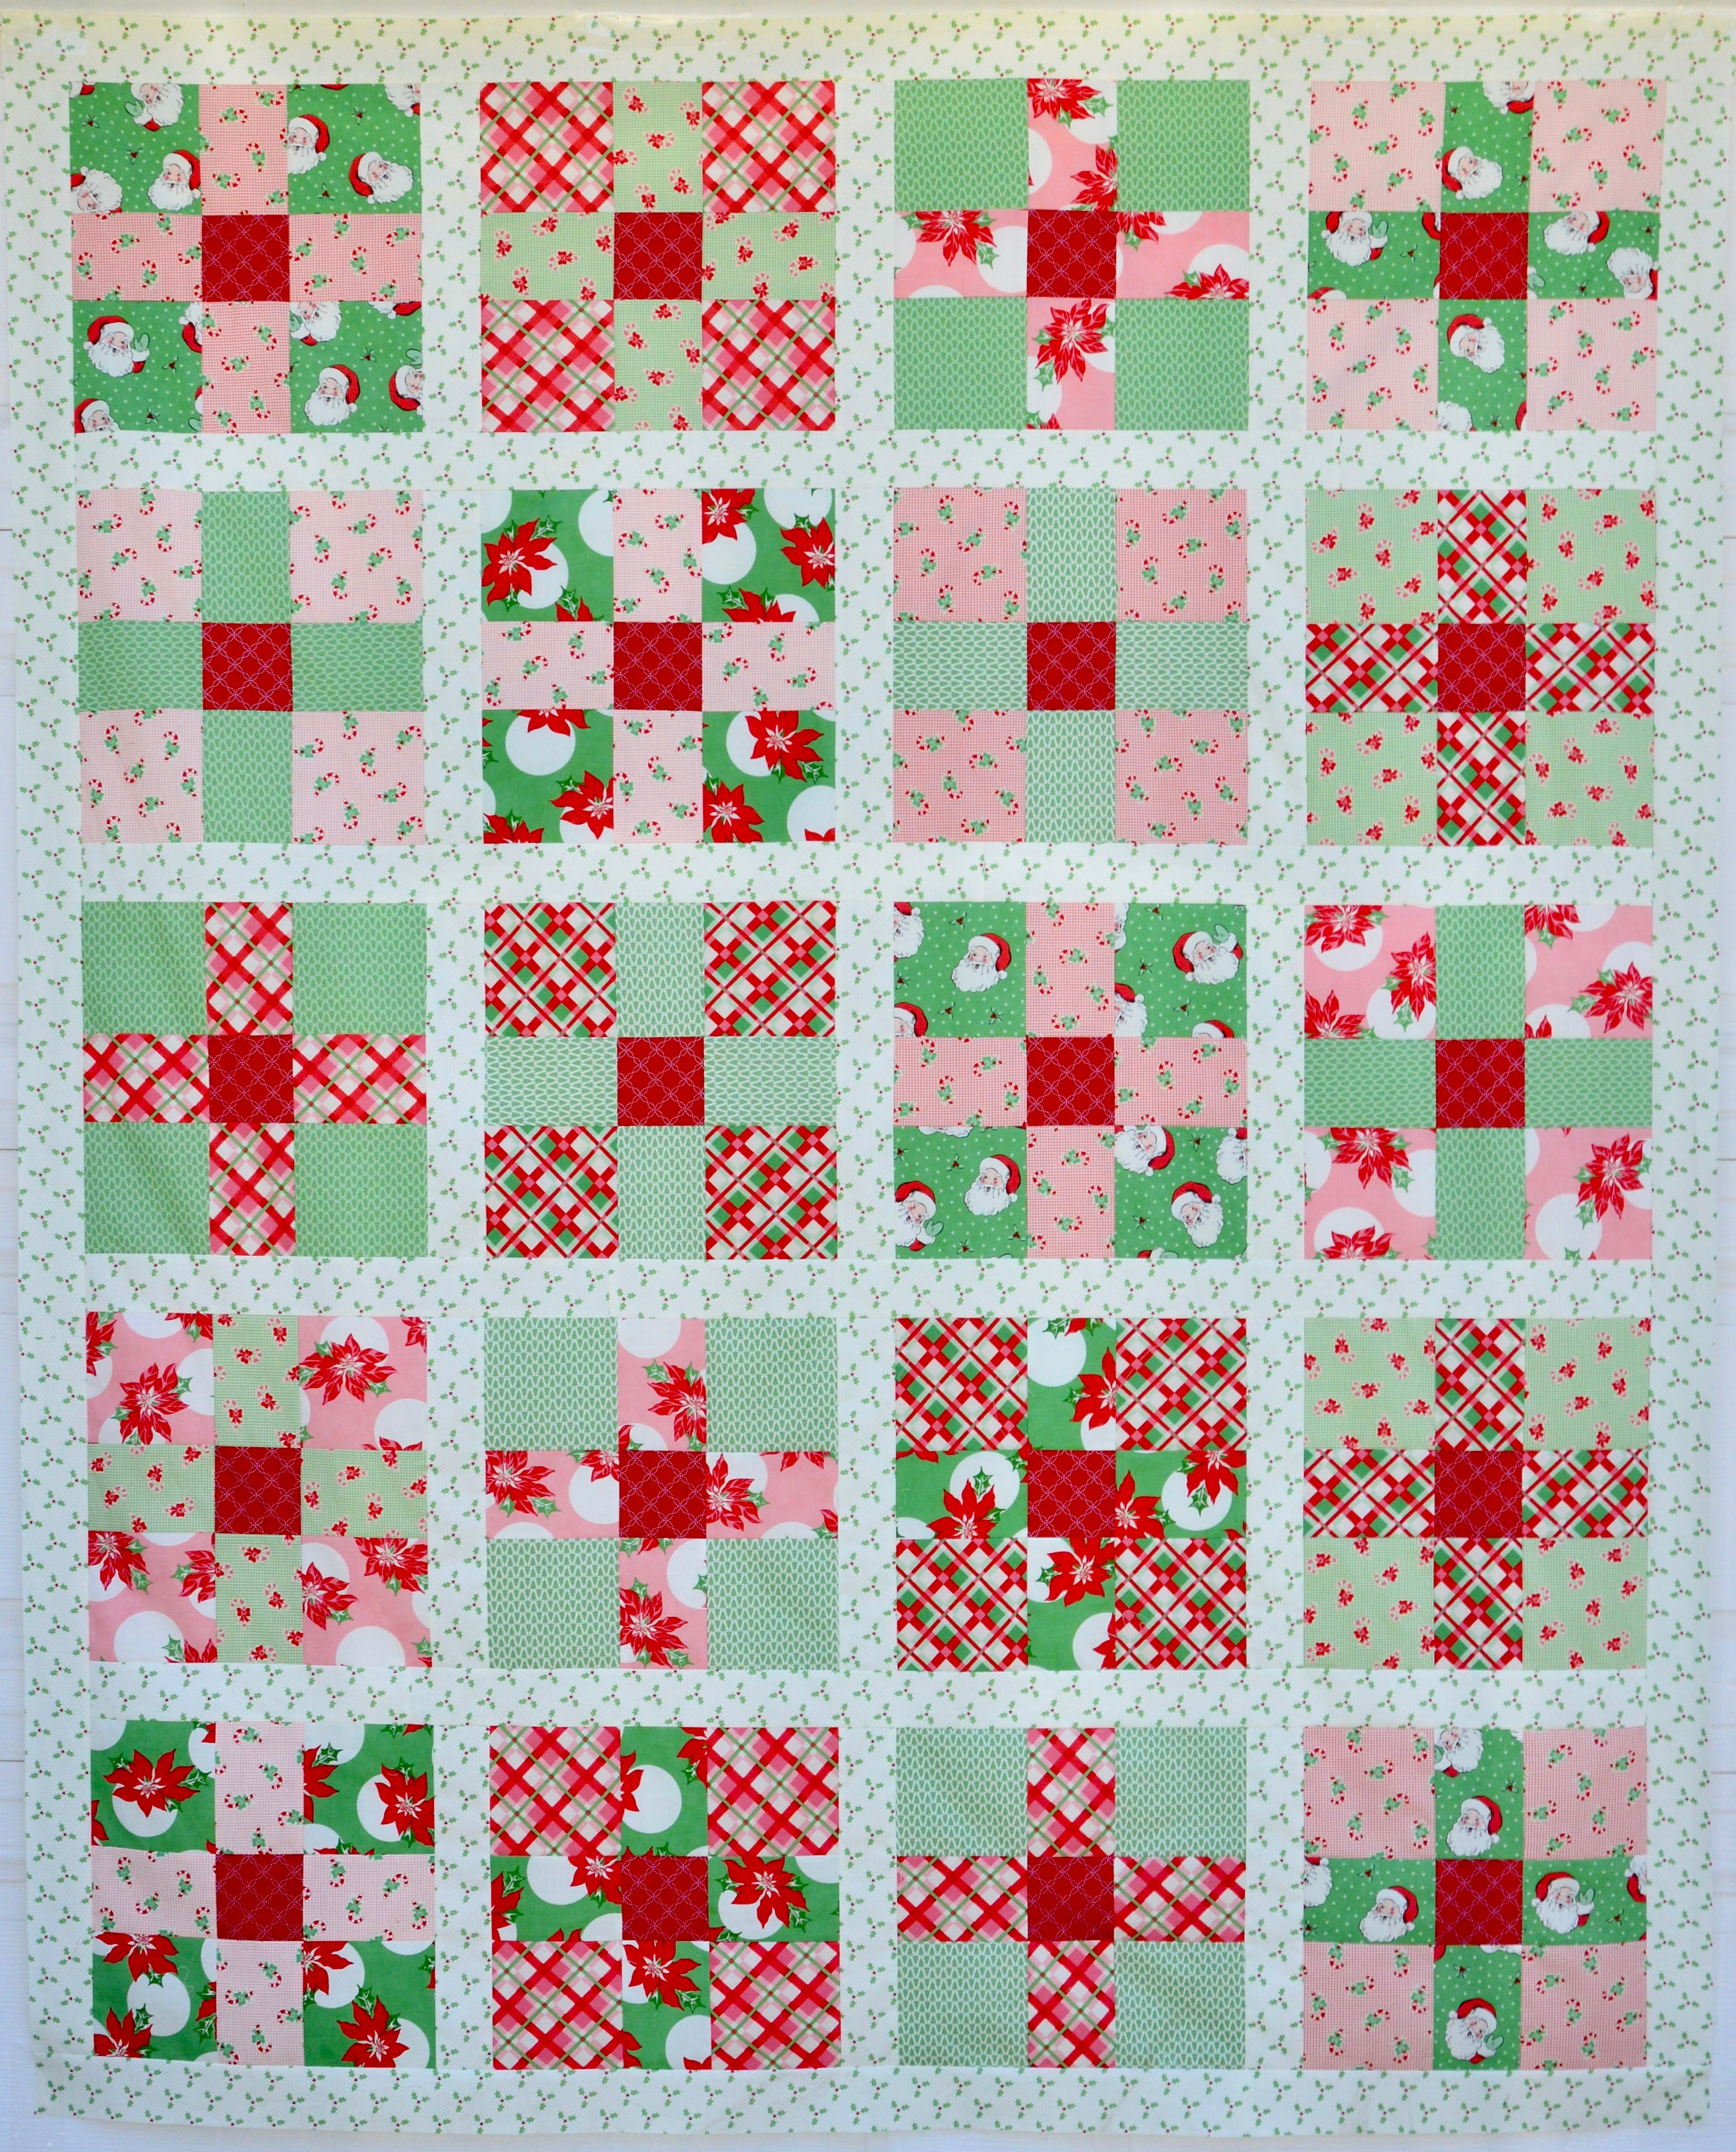 Uneven 9 Patch Quilt Pattern Featuring Swell Christmas